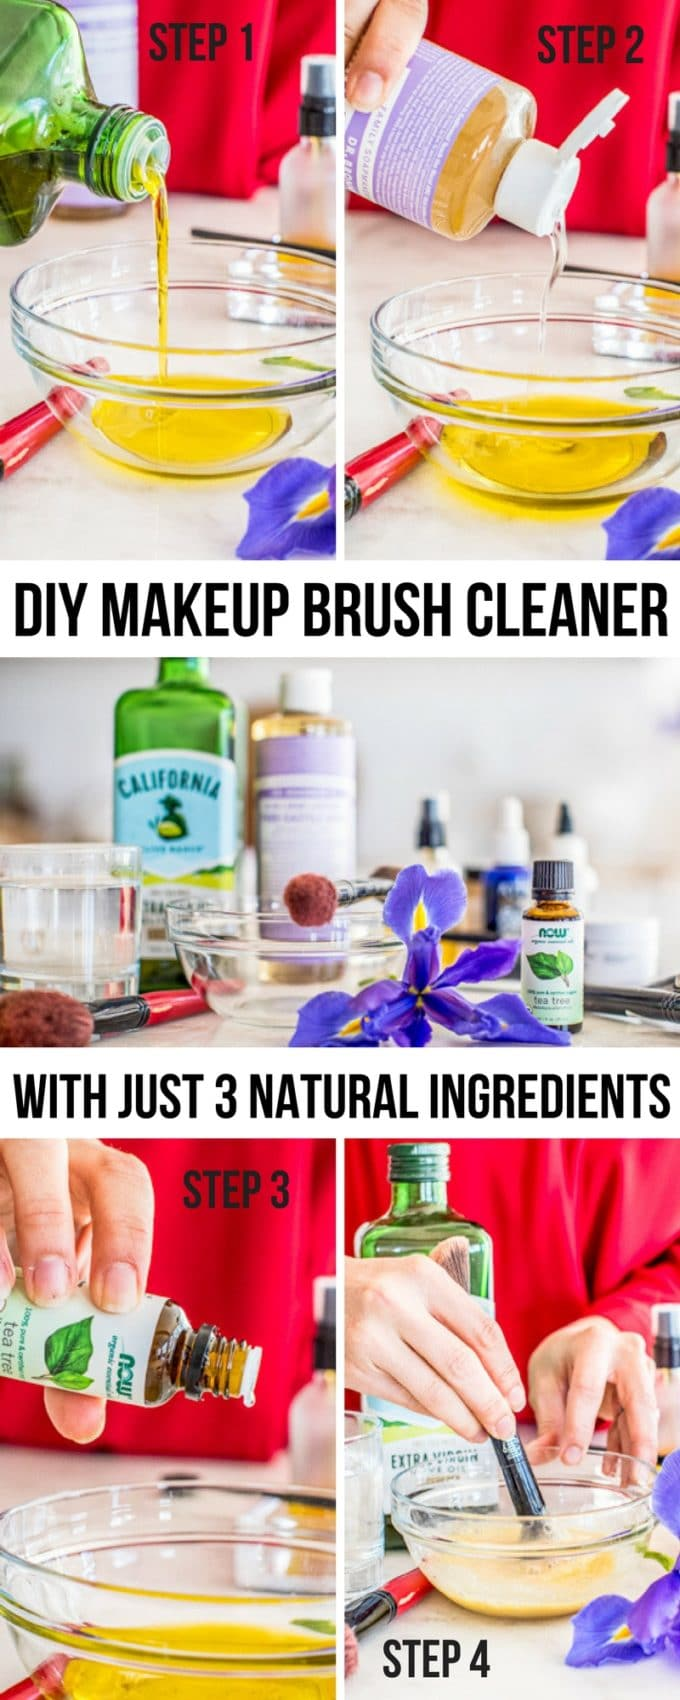 Say goodbye to toxic chemicals and expensive store-bought products. With this DIY Makeup Brush Cleaner, you just need three natural ingredients to make this easy and effective homemade solution.